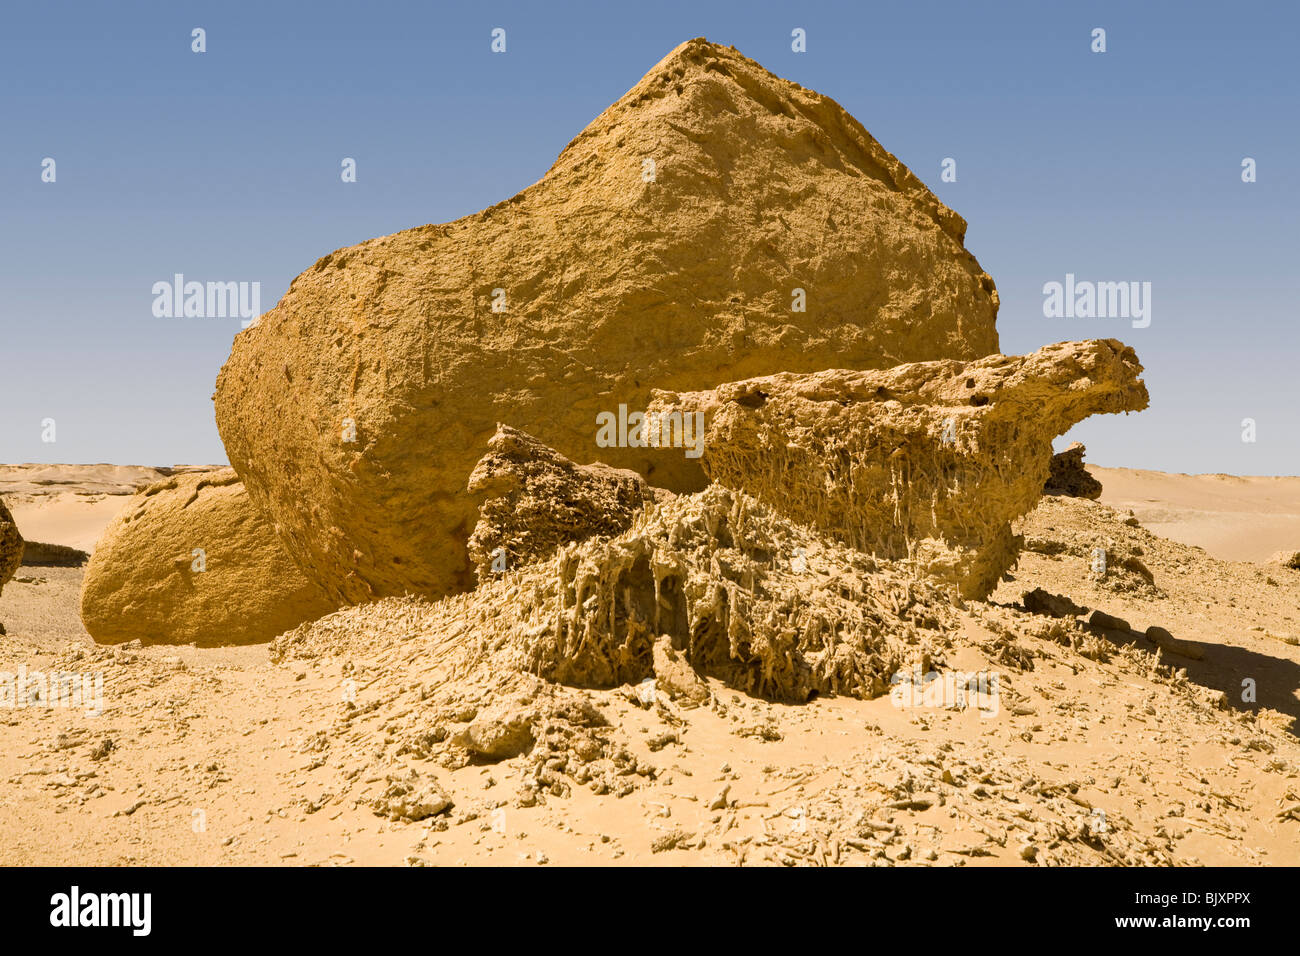 Fossilised mangrove tree roots in the Valley of The Whales, Wadi El-Hitan, Western Desert of Egypt Stock Photo